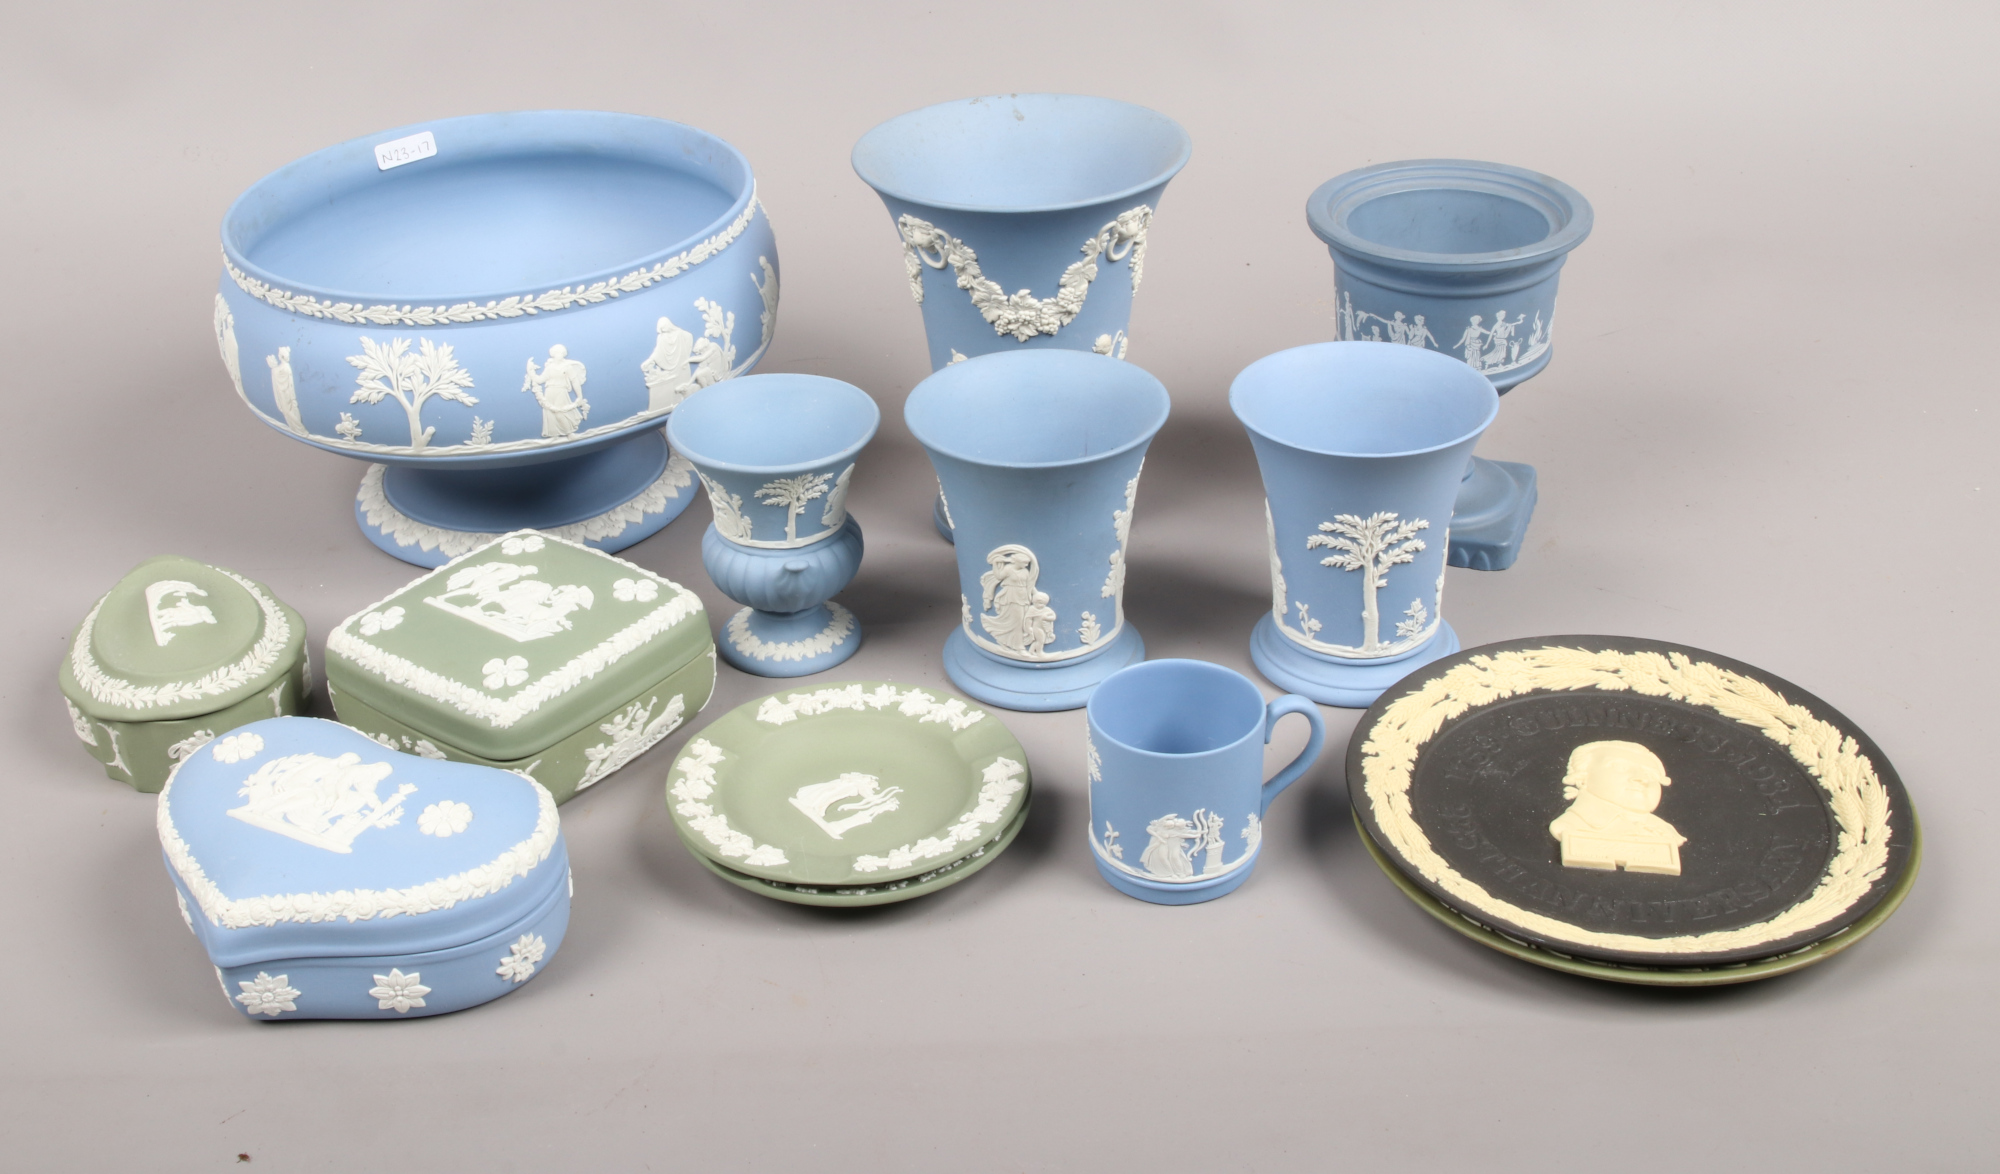 Lot 47 - A collection of Wedgwood ceramics to include pedestal bowl, trinket dishes, vases etc.